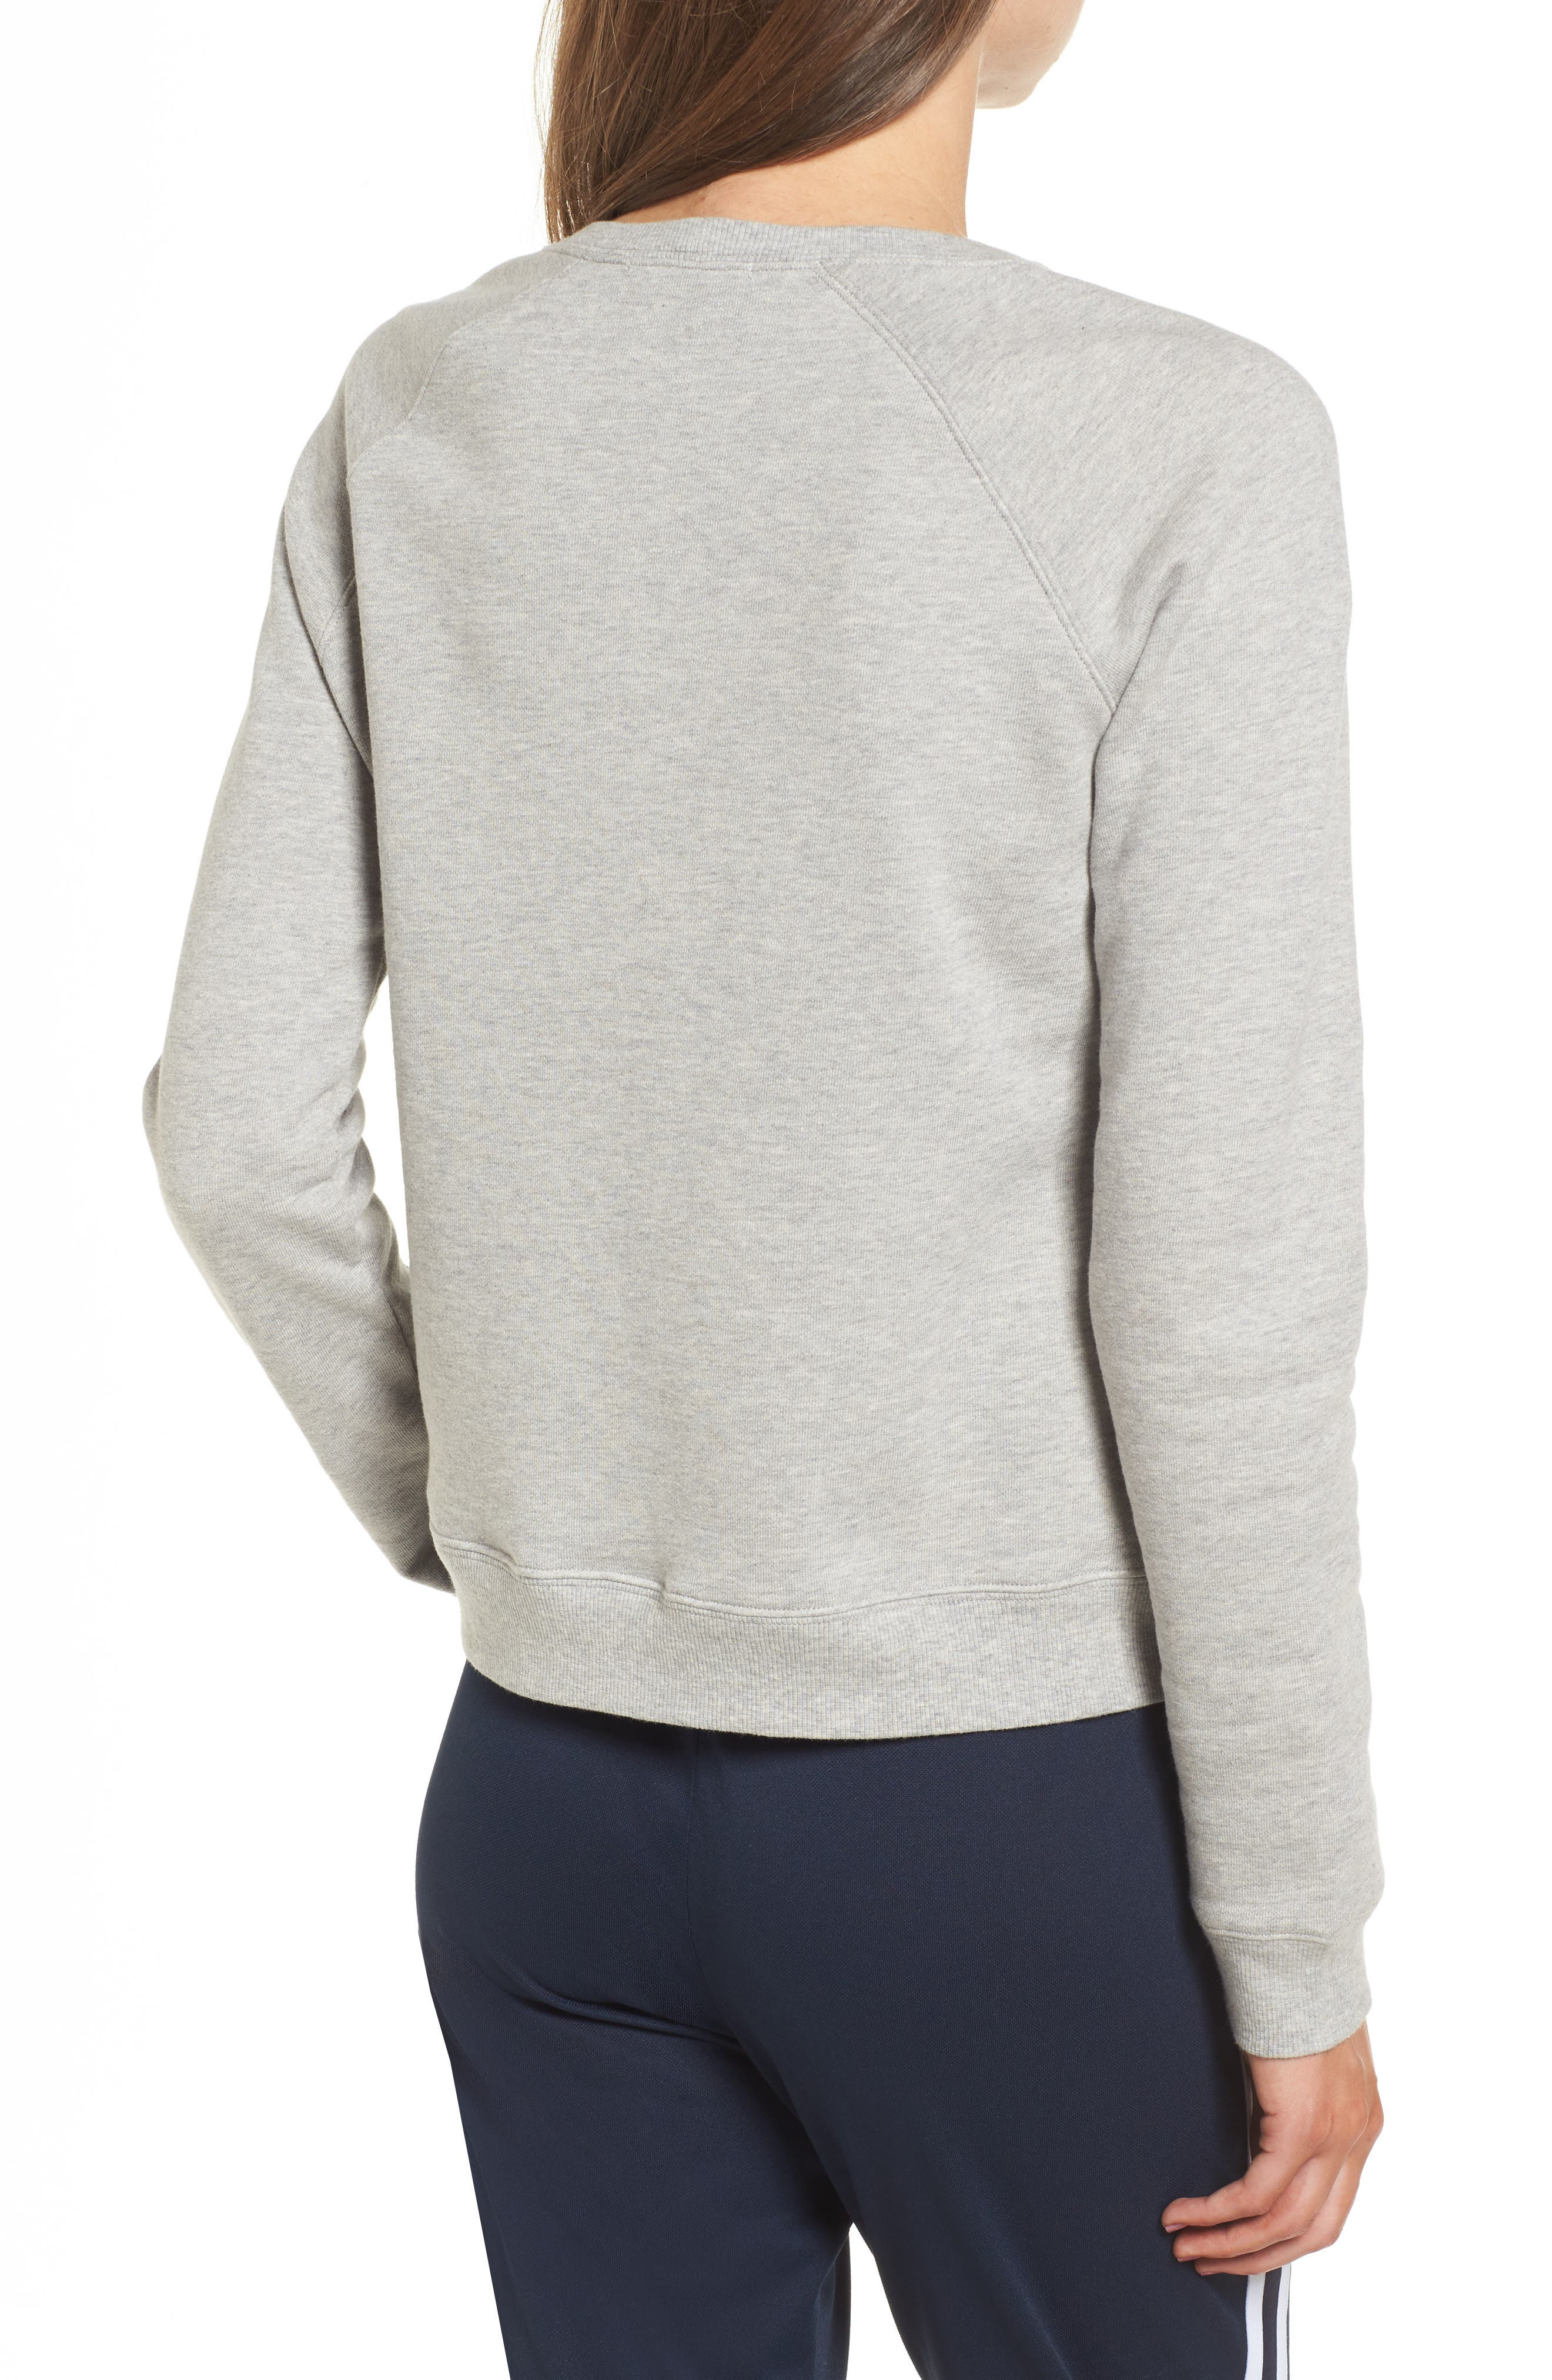 Out of Office Sweatshirt,                             Alternate thumbnail 2, color,